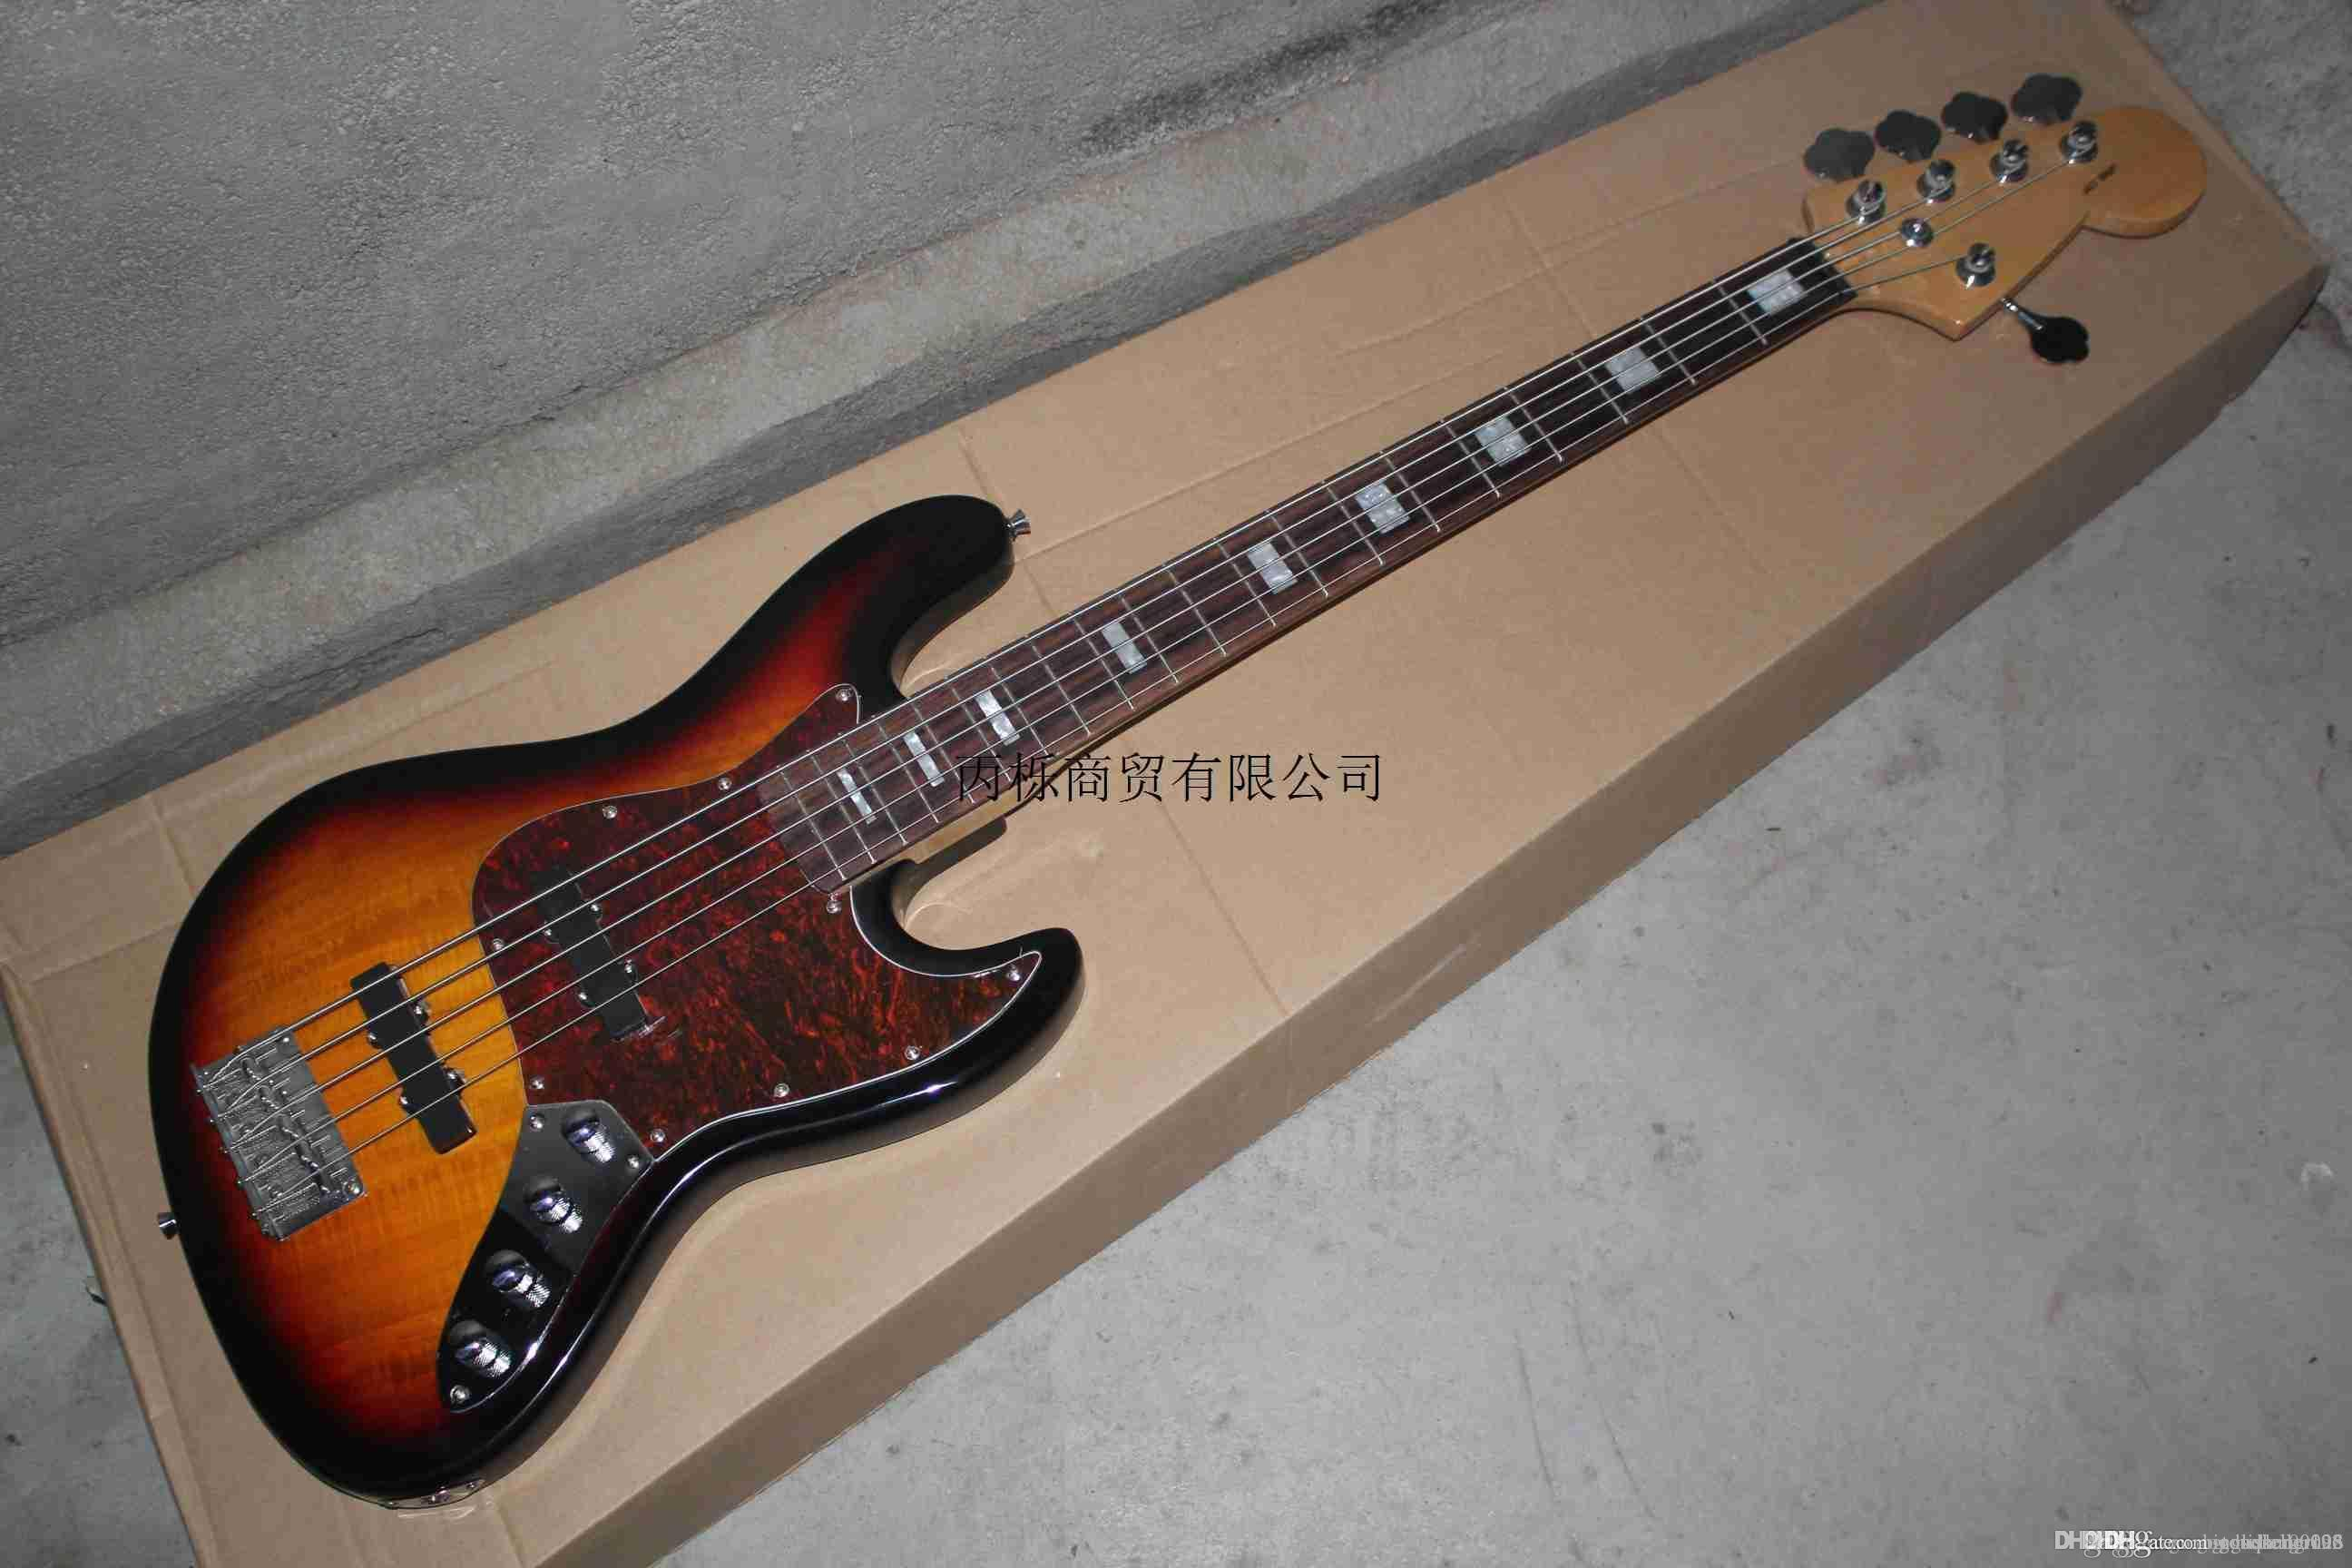 Free Shipping High Quality F Jazz Bass 5 String Sunburst Rosewood Fingerboard Active Pickups 9V Battery electric Bass Guitar In Stock